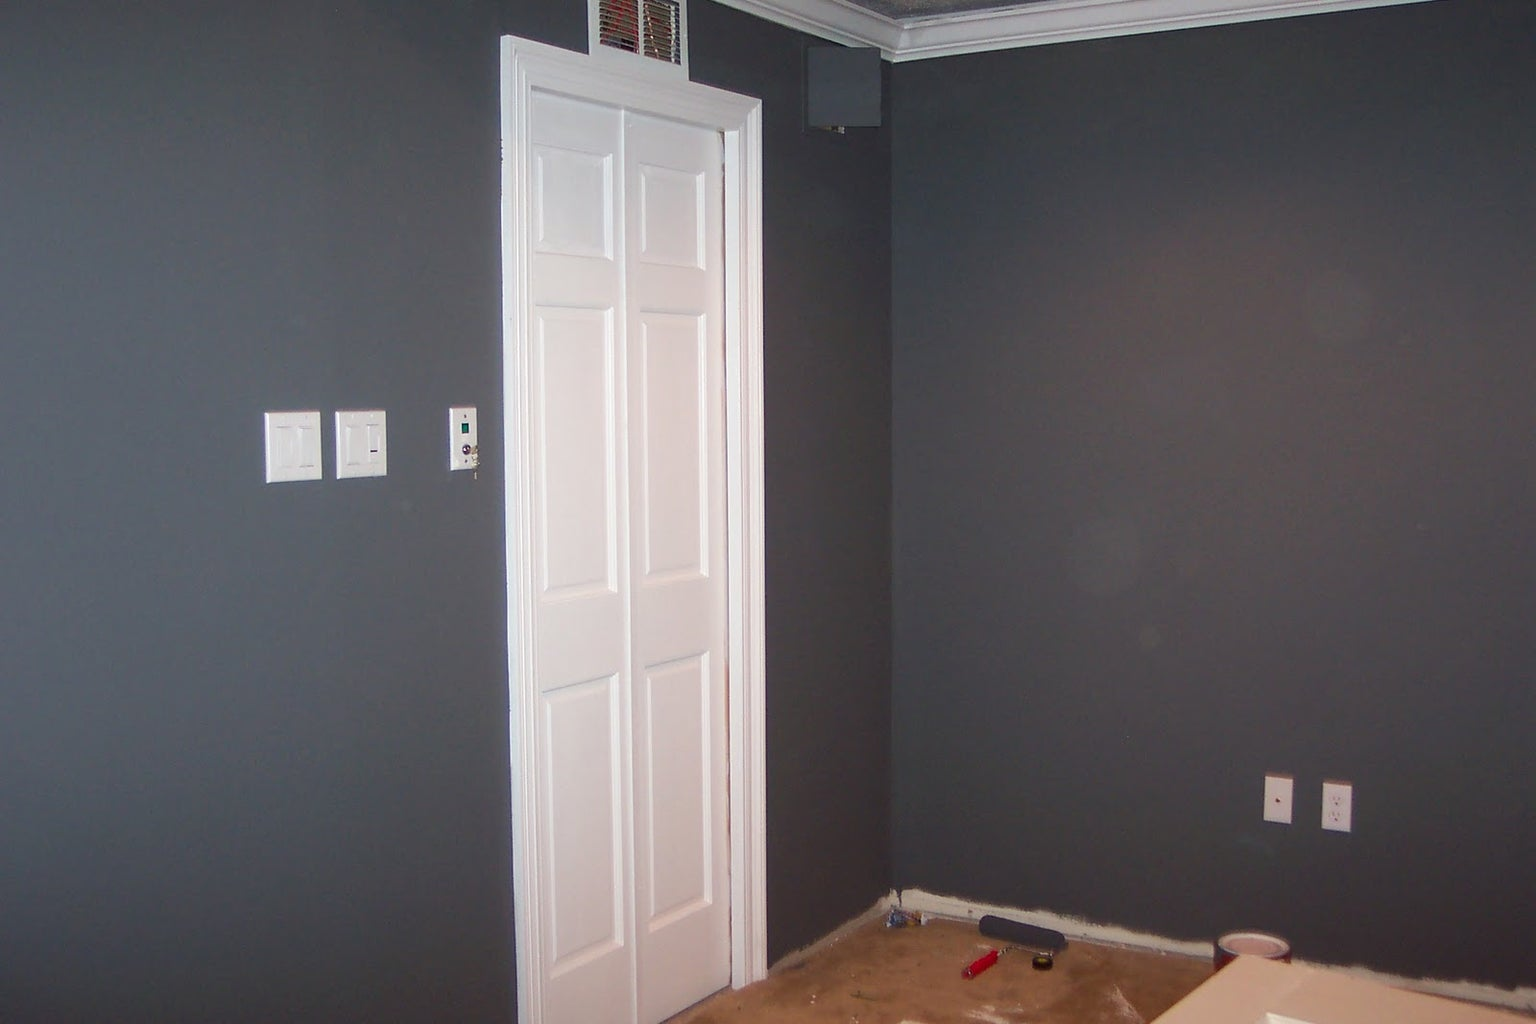 Test It Out / Patch Up the Wall